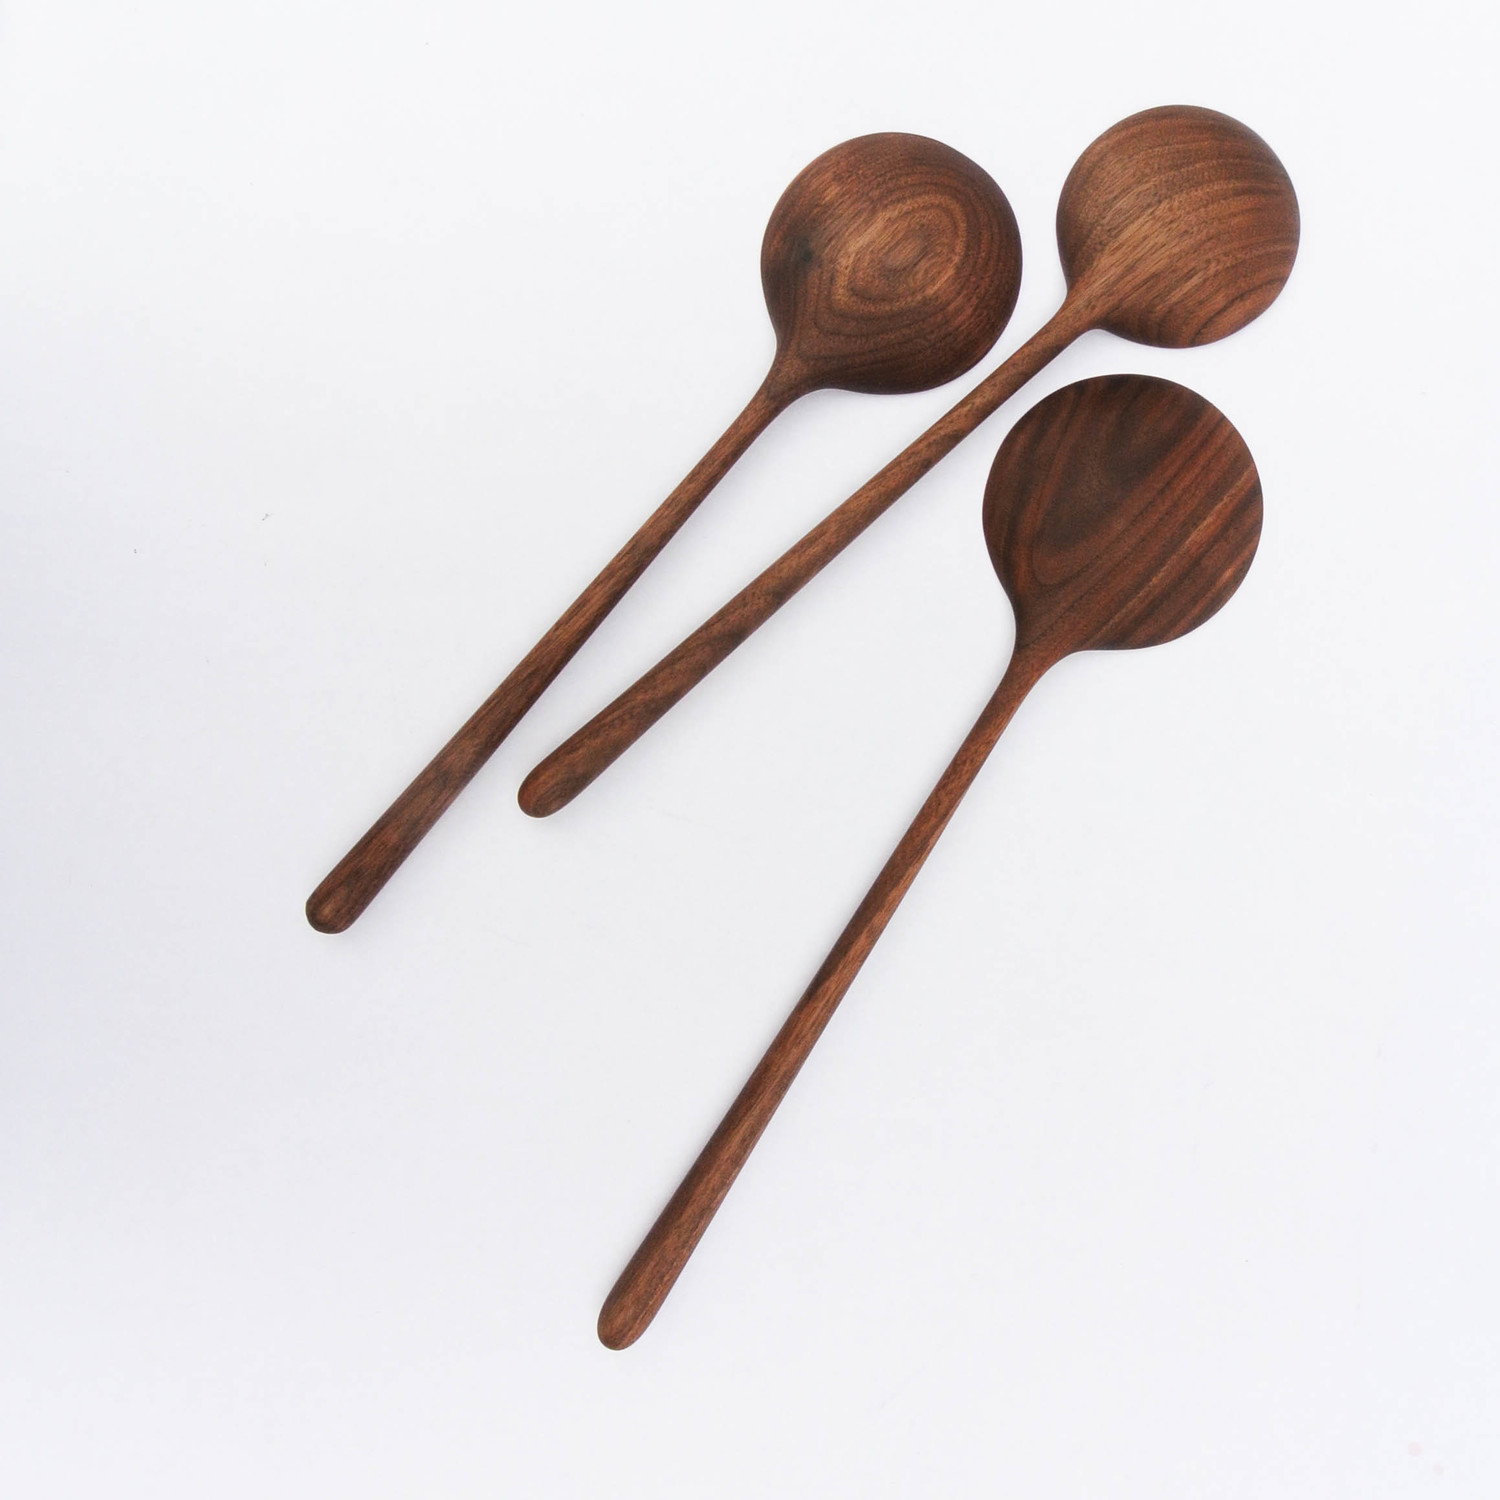 walnut spoons starting at $55 made to order, custom sizing available inquire for details